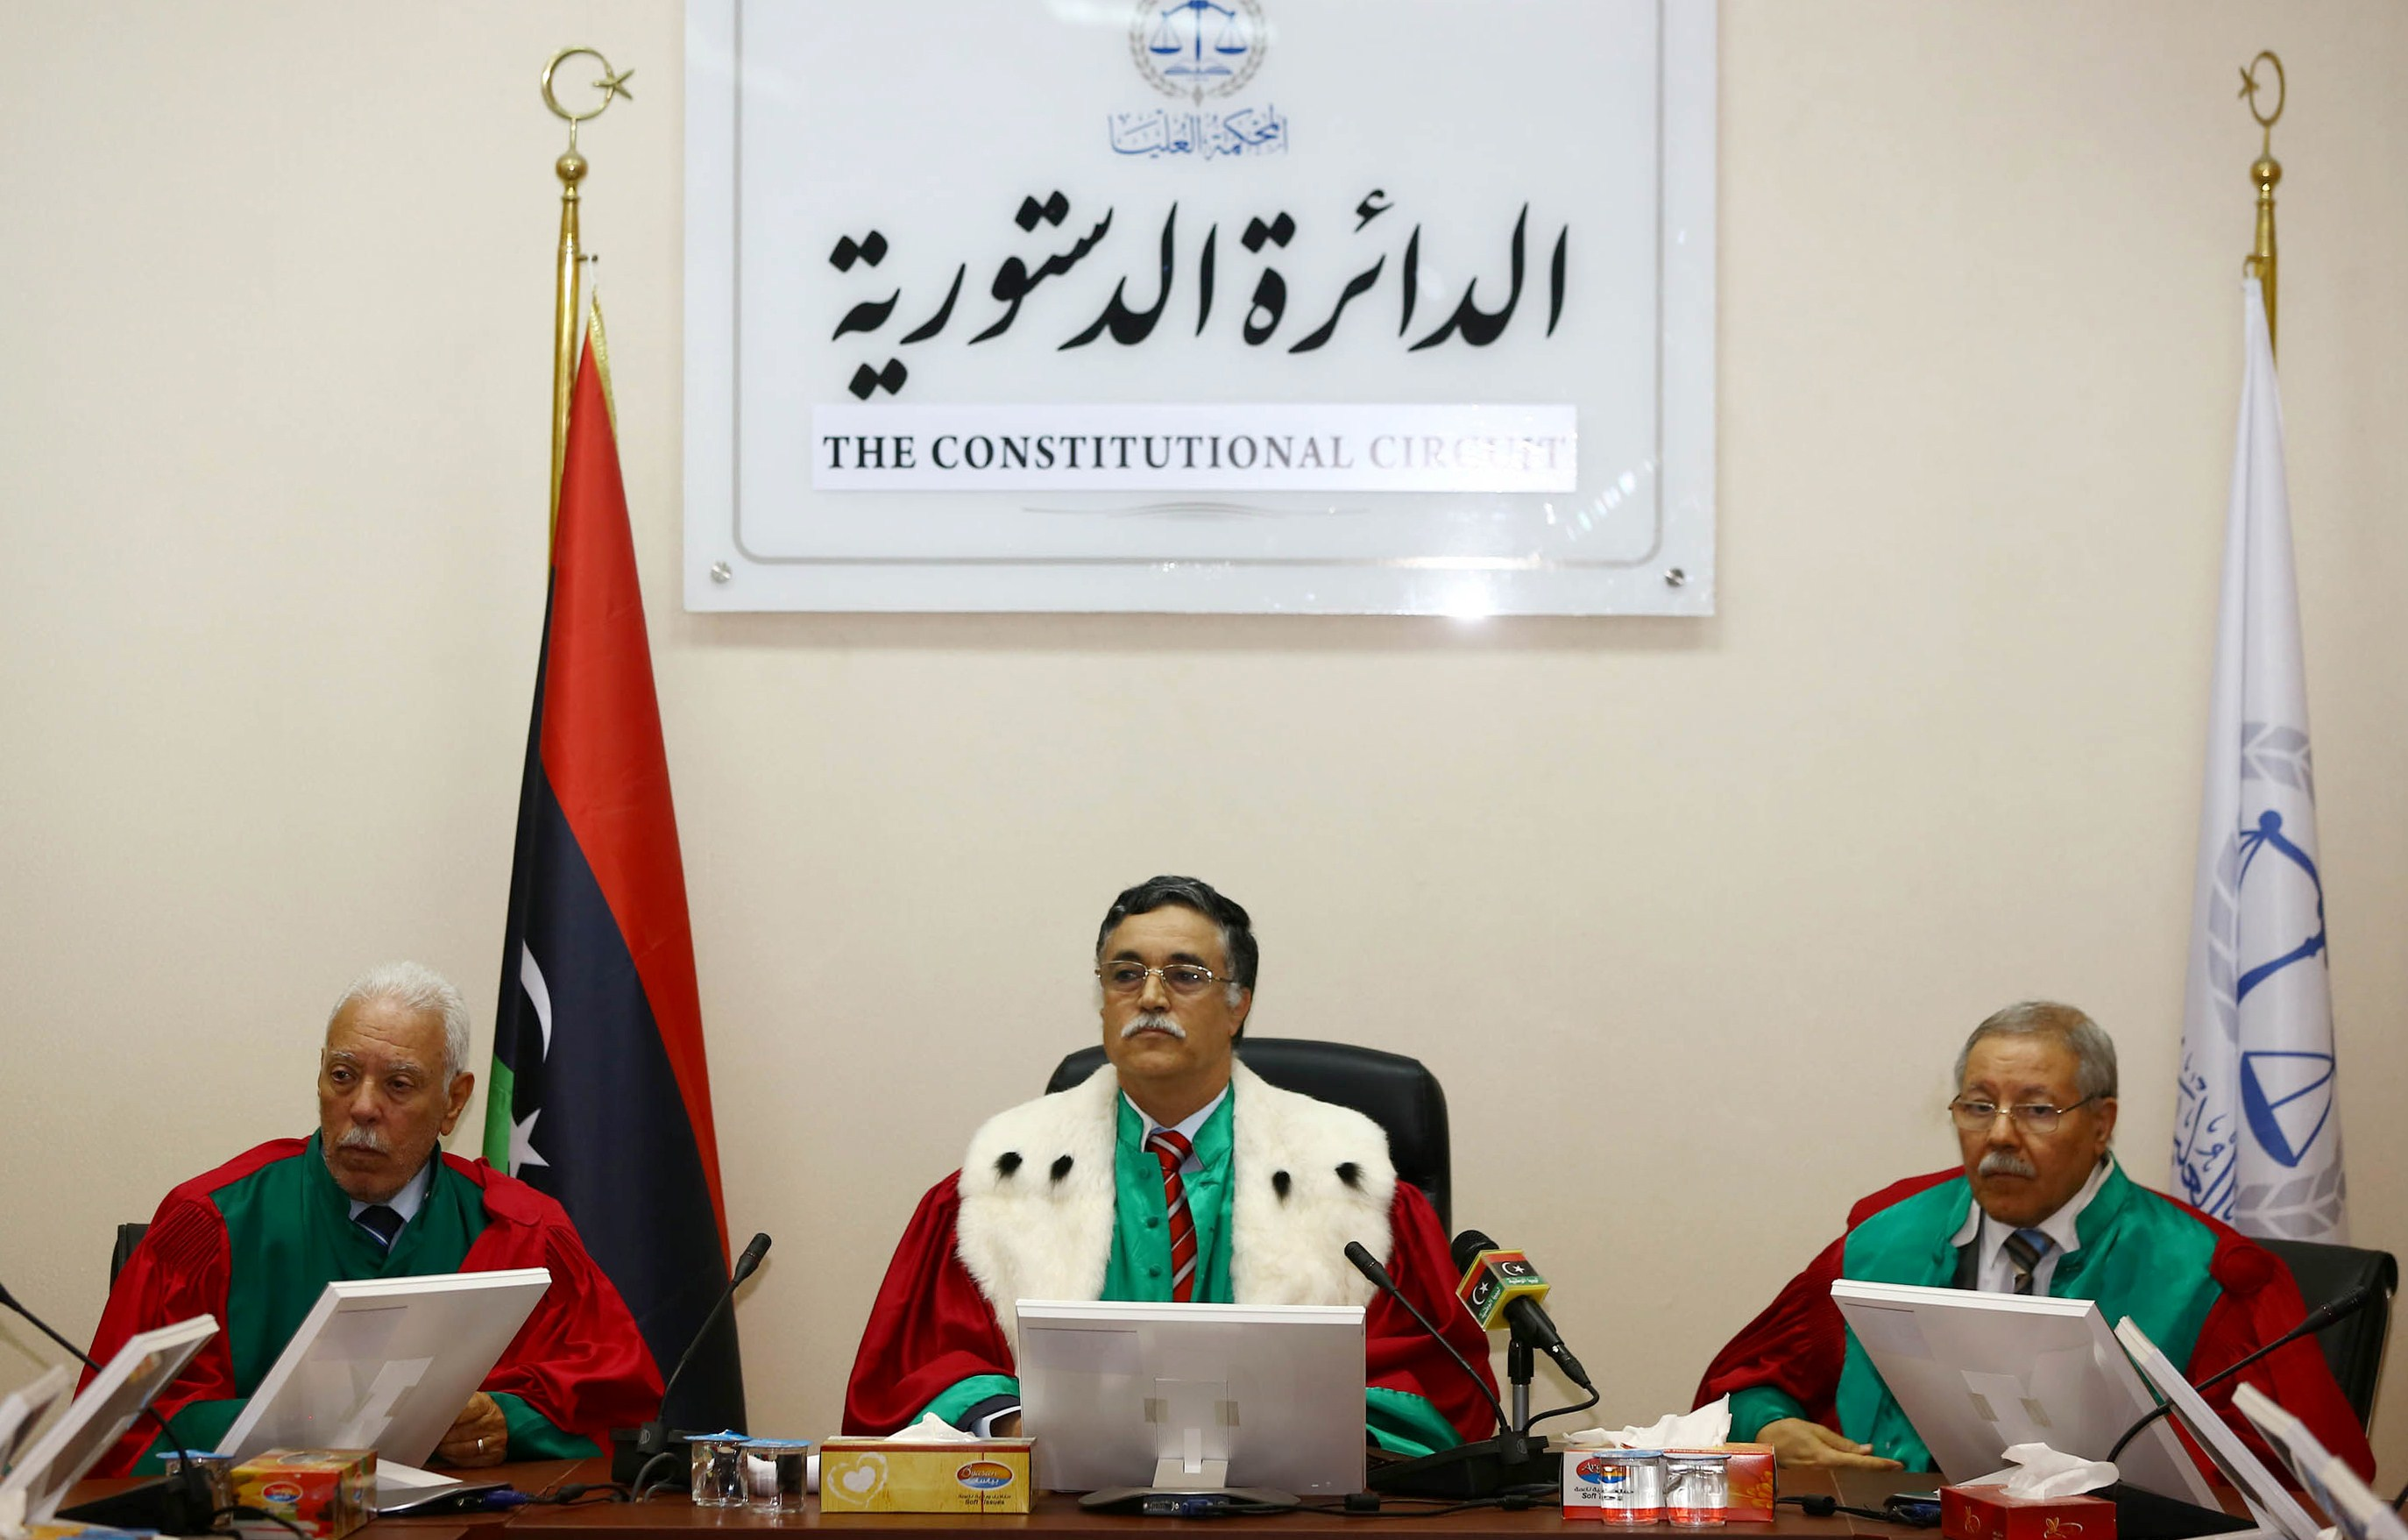 President of Libya's supreme court, Kamal Edhan (C) chairs a hearing to discuss the legitimacy of the prime minister on June 9, 2014 in the capital Tripoli. The court ruled that the election of prime minister Ahmed Miitig in a chaotic session in the interim parliament in early May was unconstitutional. (AFP PHOTO / MAHMUD TURKIA)